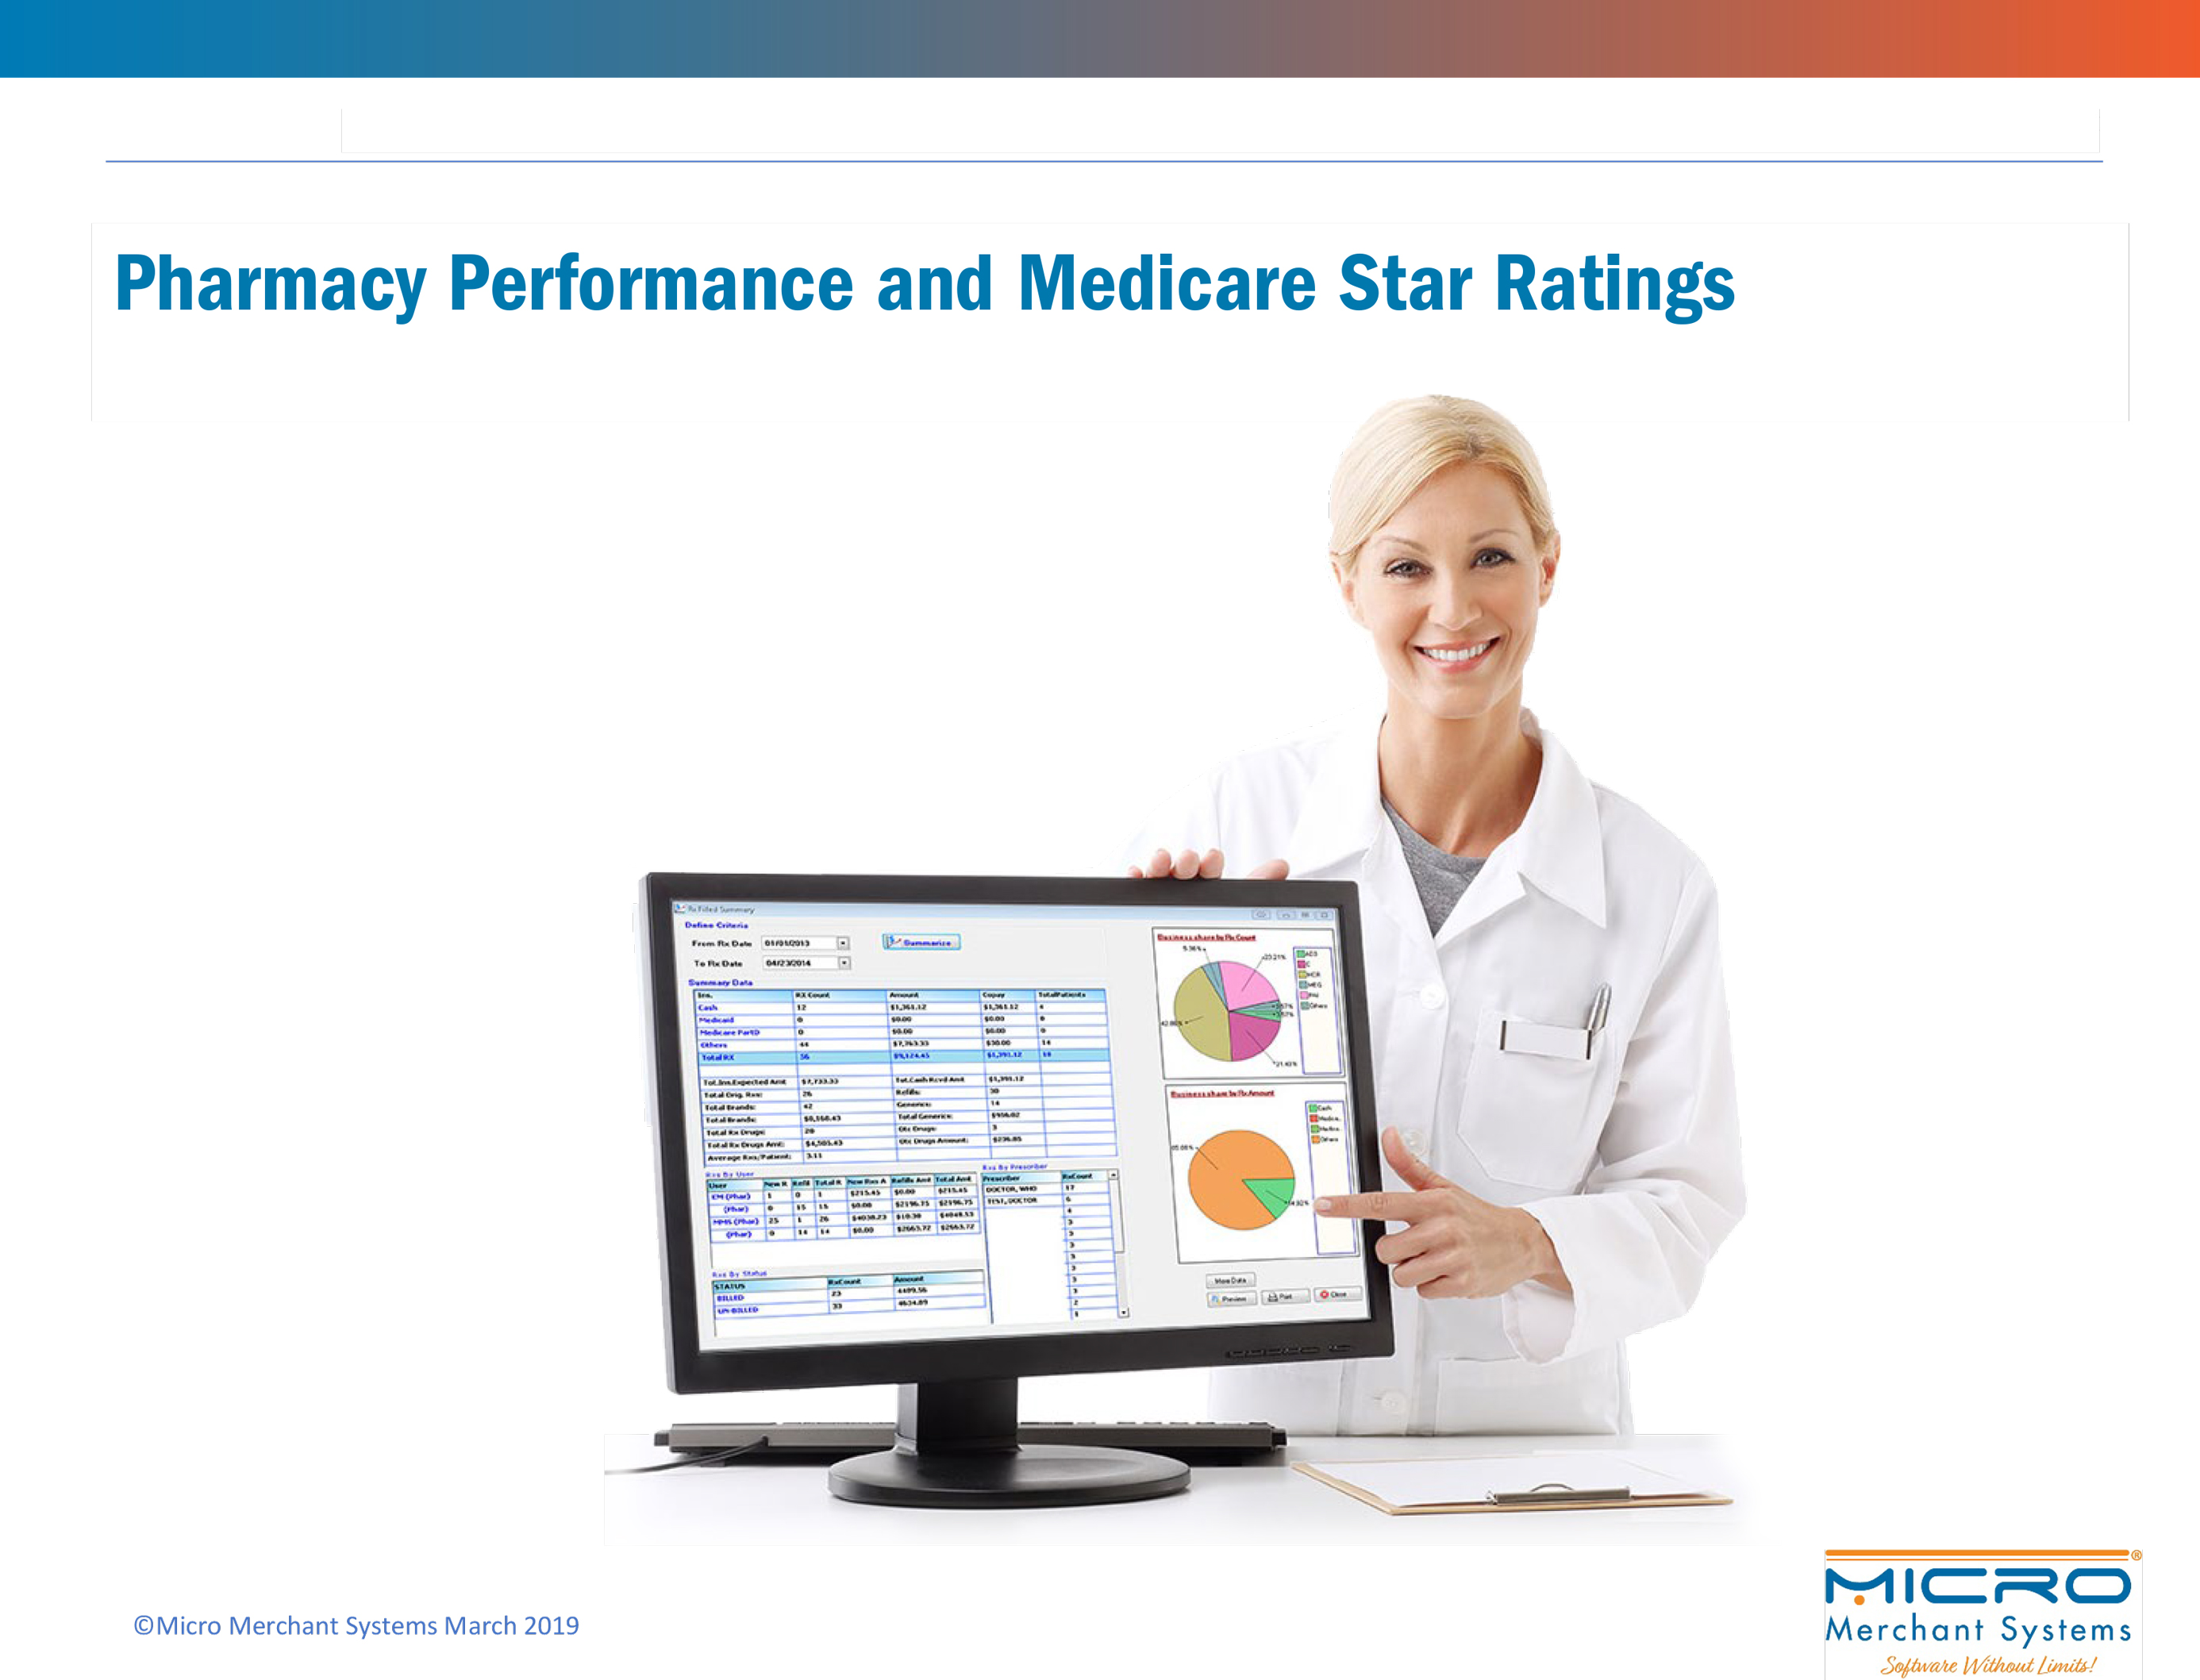 Pharmacy Performance and Medicare Star Ratings